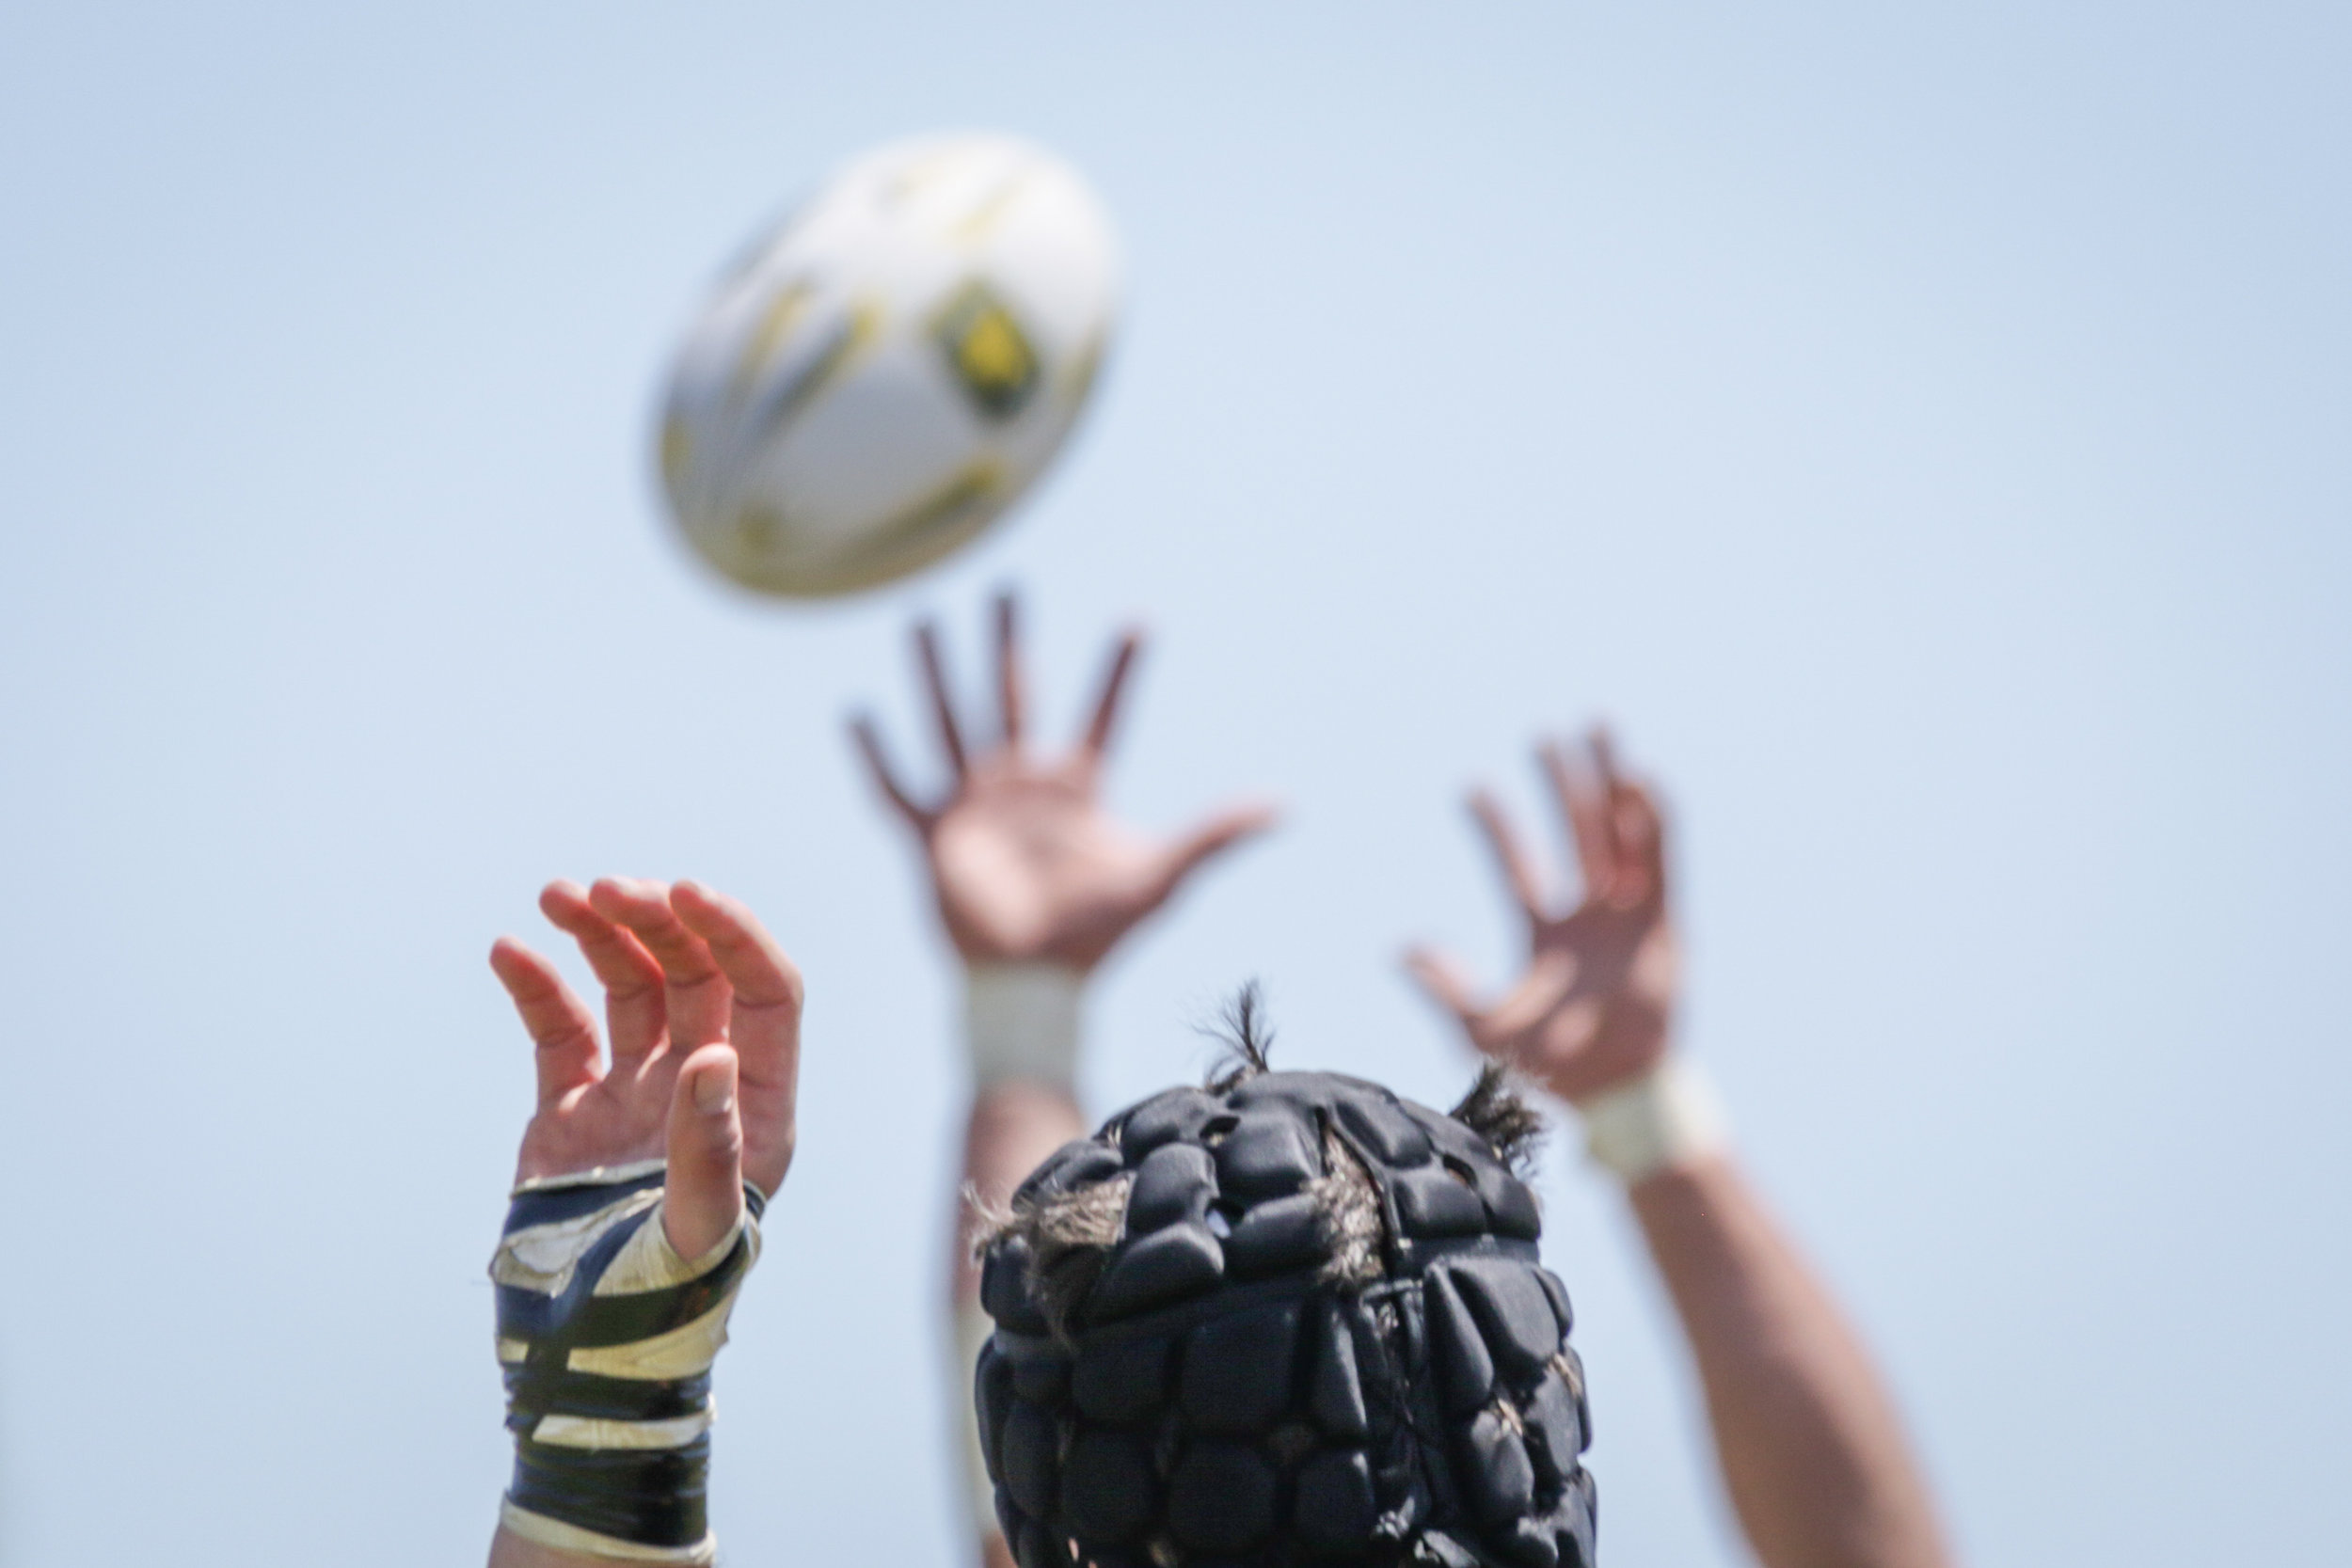 Players of Santa Monica Rugby and Old Mission Beach Athletic Club try to win possession after a line out during their game held at Westchester High School on Saturday, April 28th, 2018. The game ended 26-7 in favor for OMBAC. (Westchester, California, Saturday, April 28, 2018.) (Ashutosh Bikram Singh/Corsair Photo)